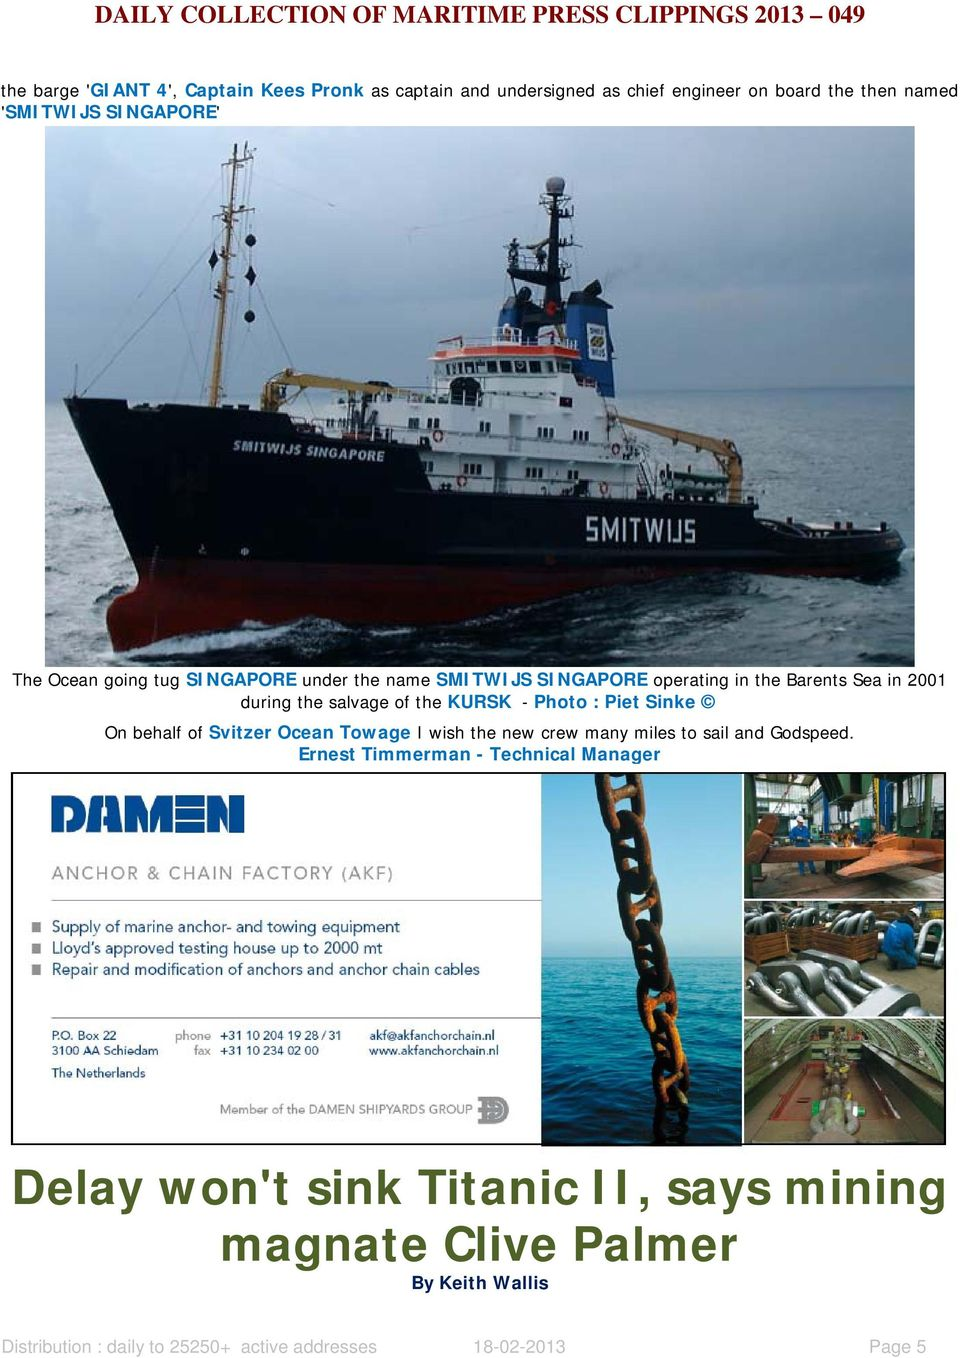 : Piet Sinke On behalf of Svitzer Ocean Towage I wish the new crew many miles to sail and Godspeed.